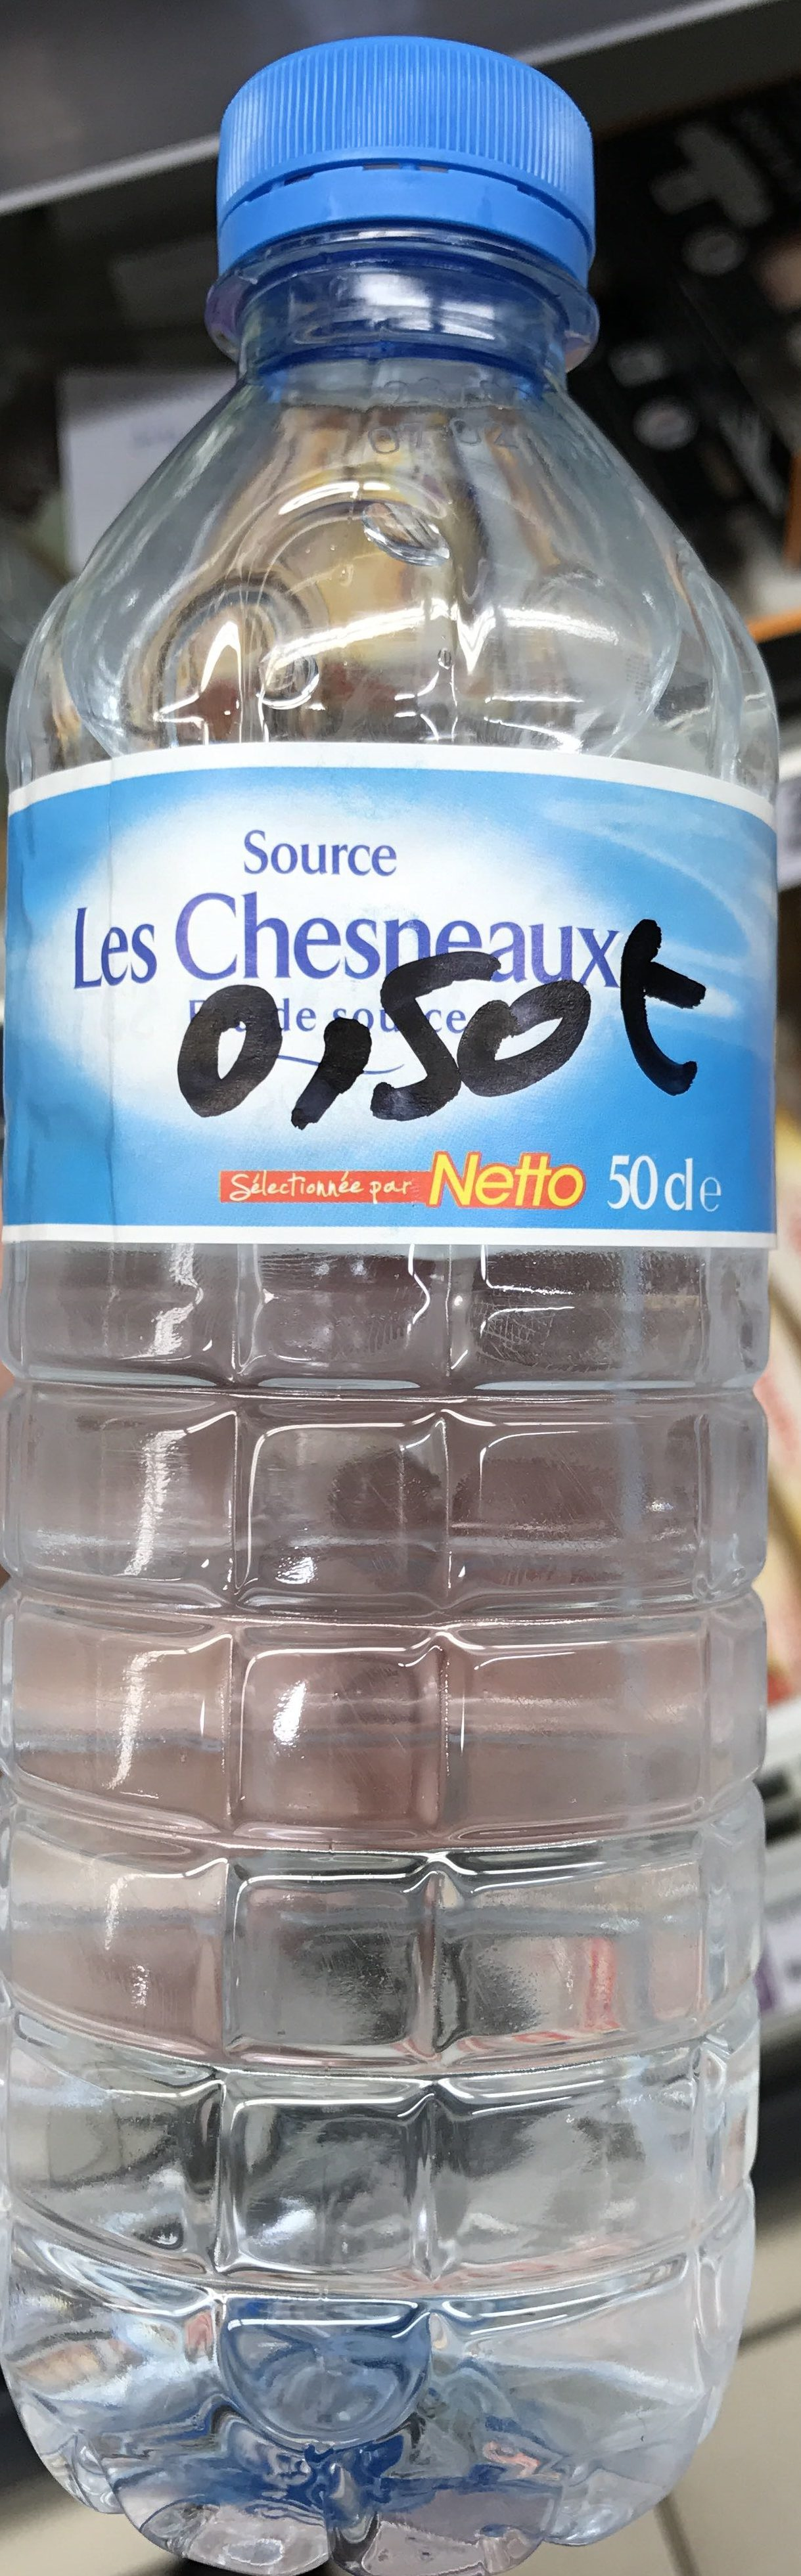 Source Les Chesneaux - Product